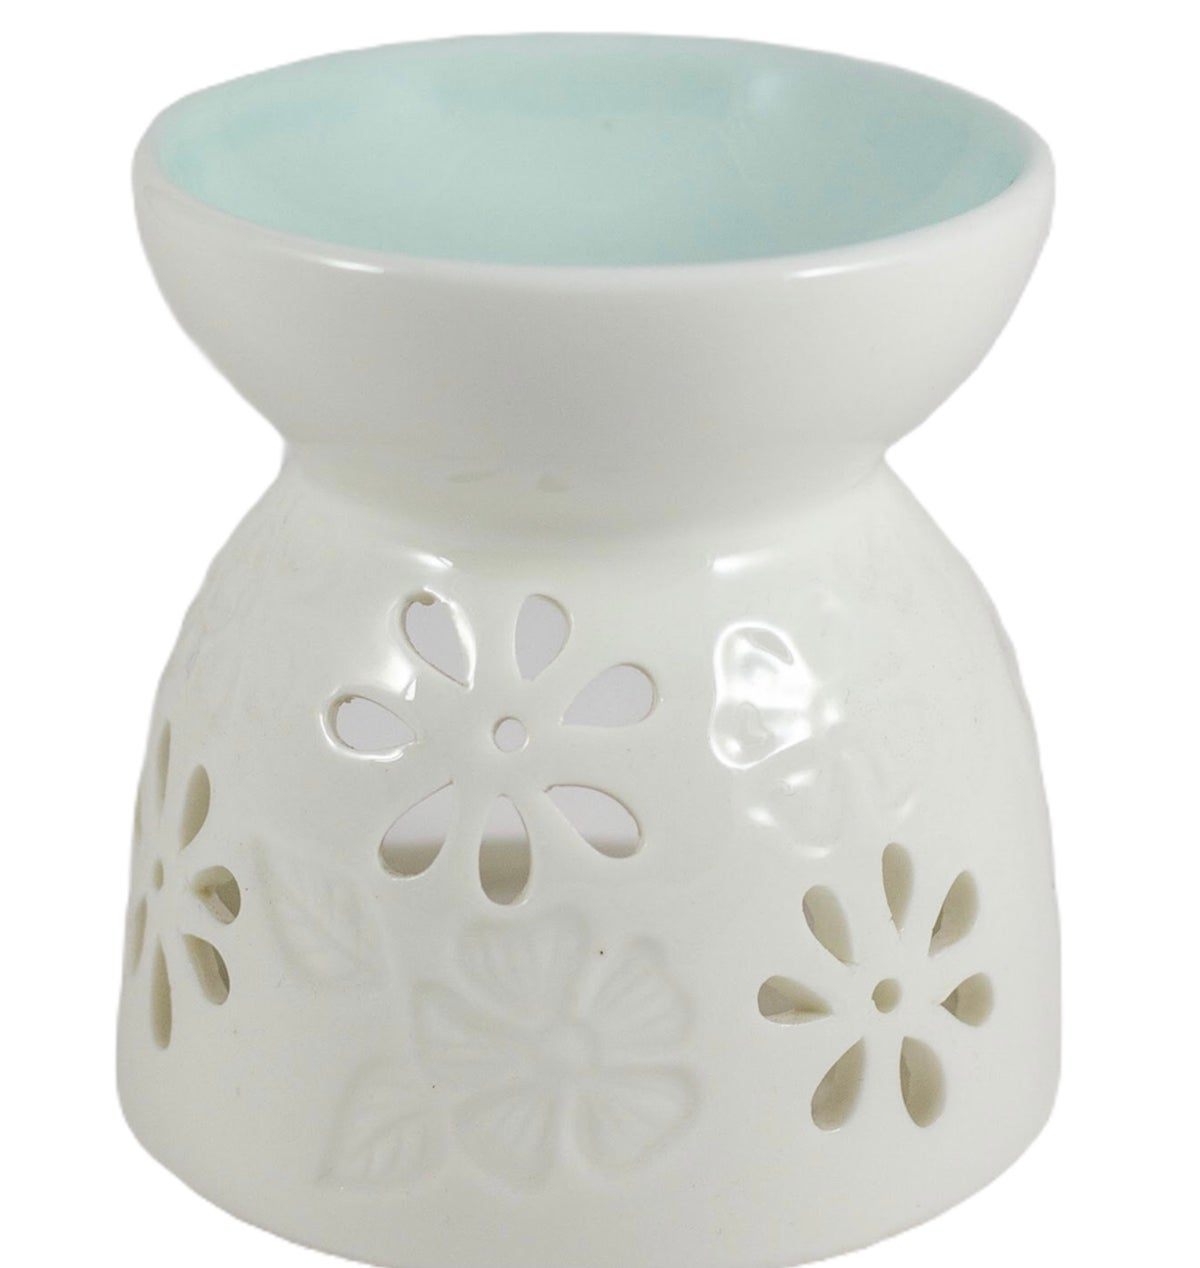 Image of Floral burner with duck egg blue bowl